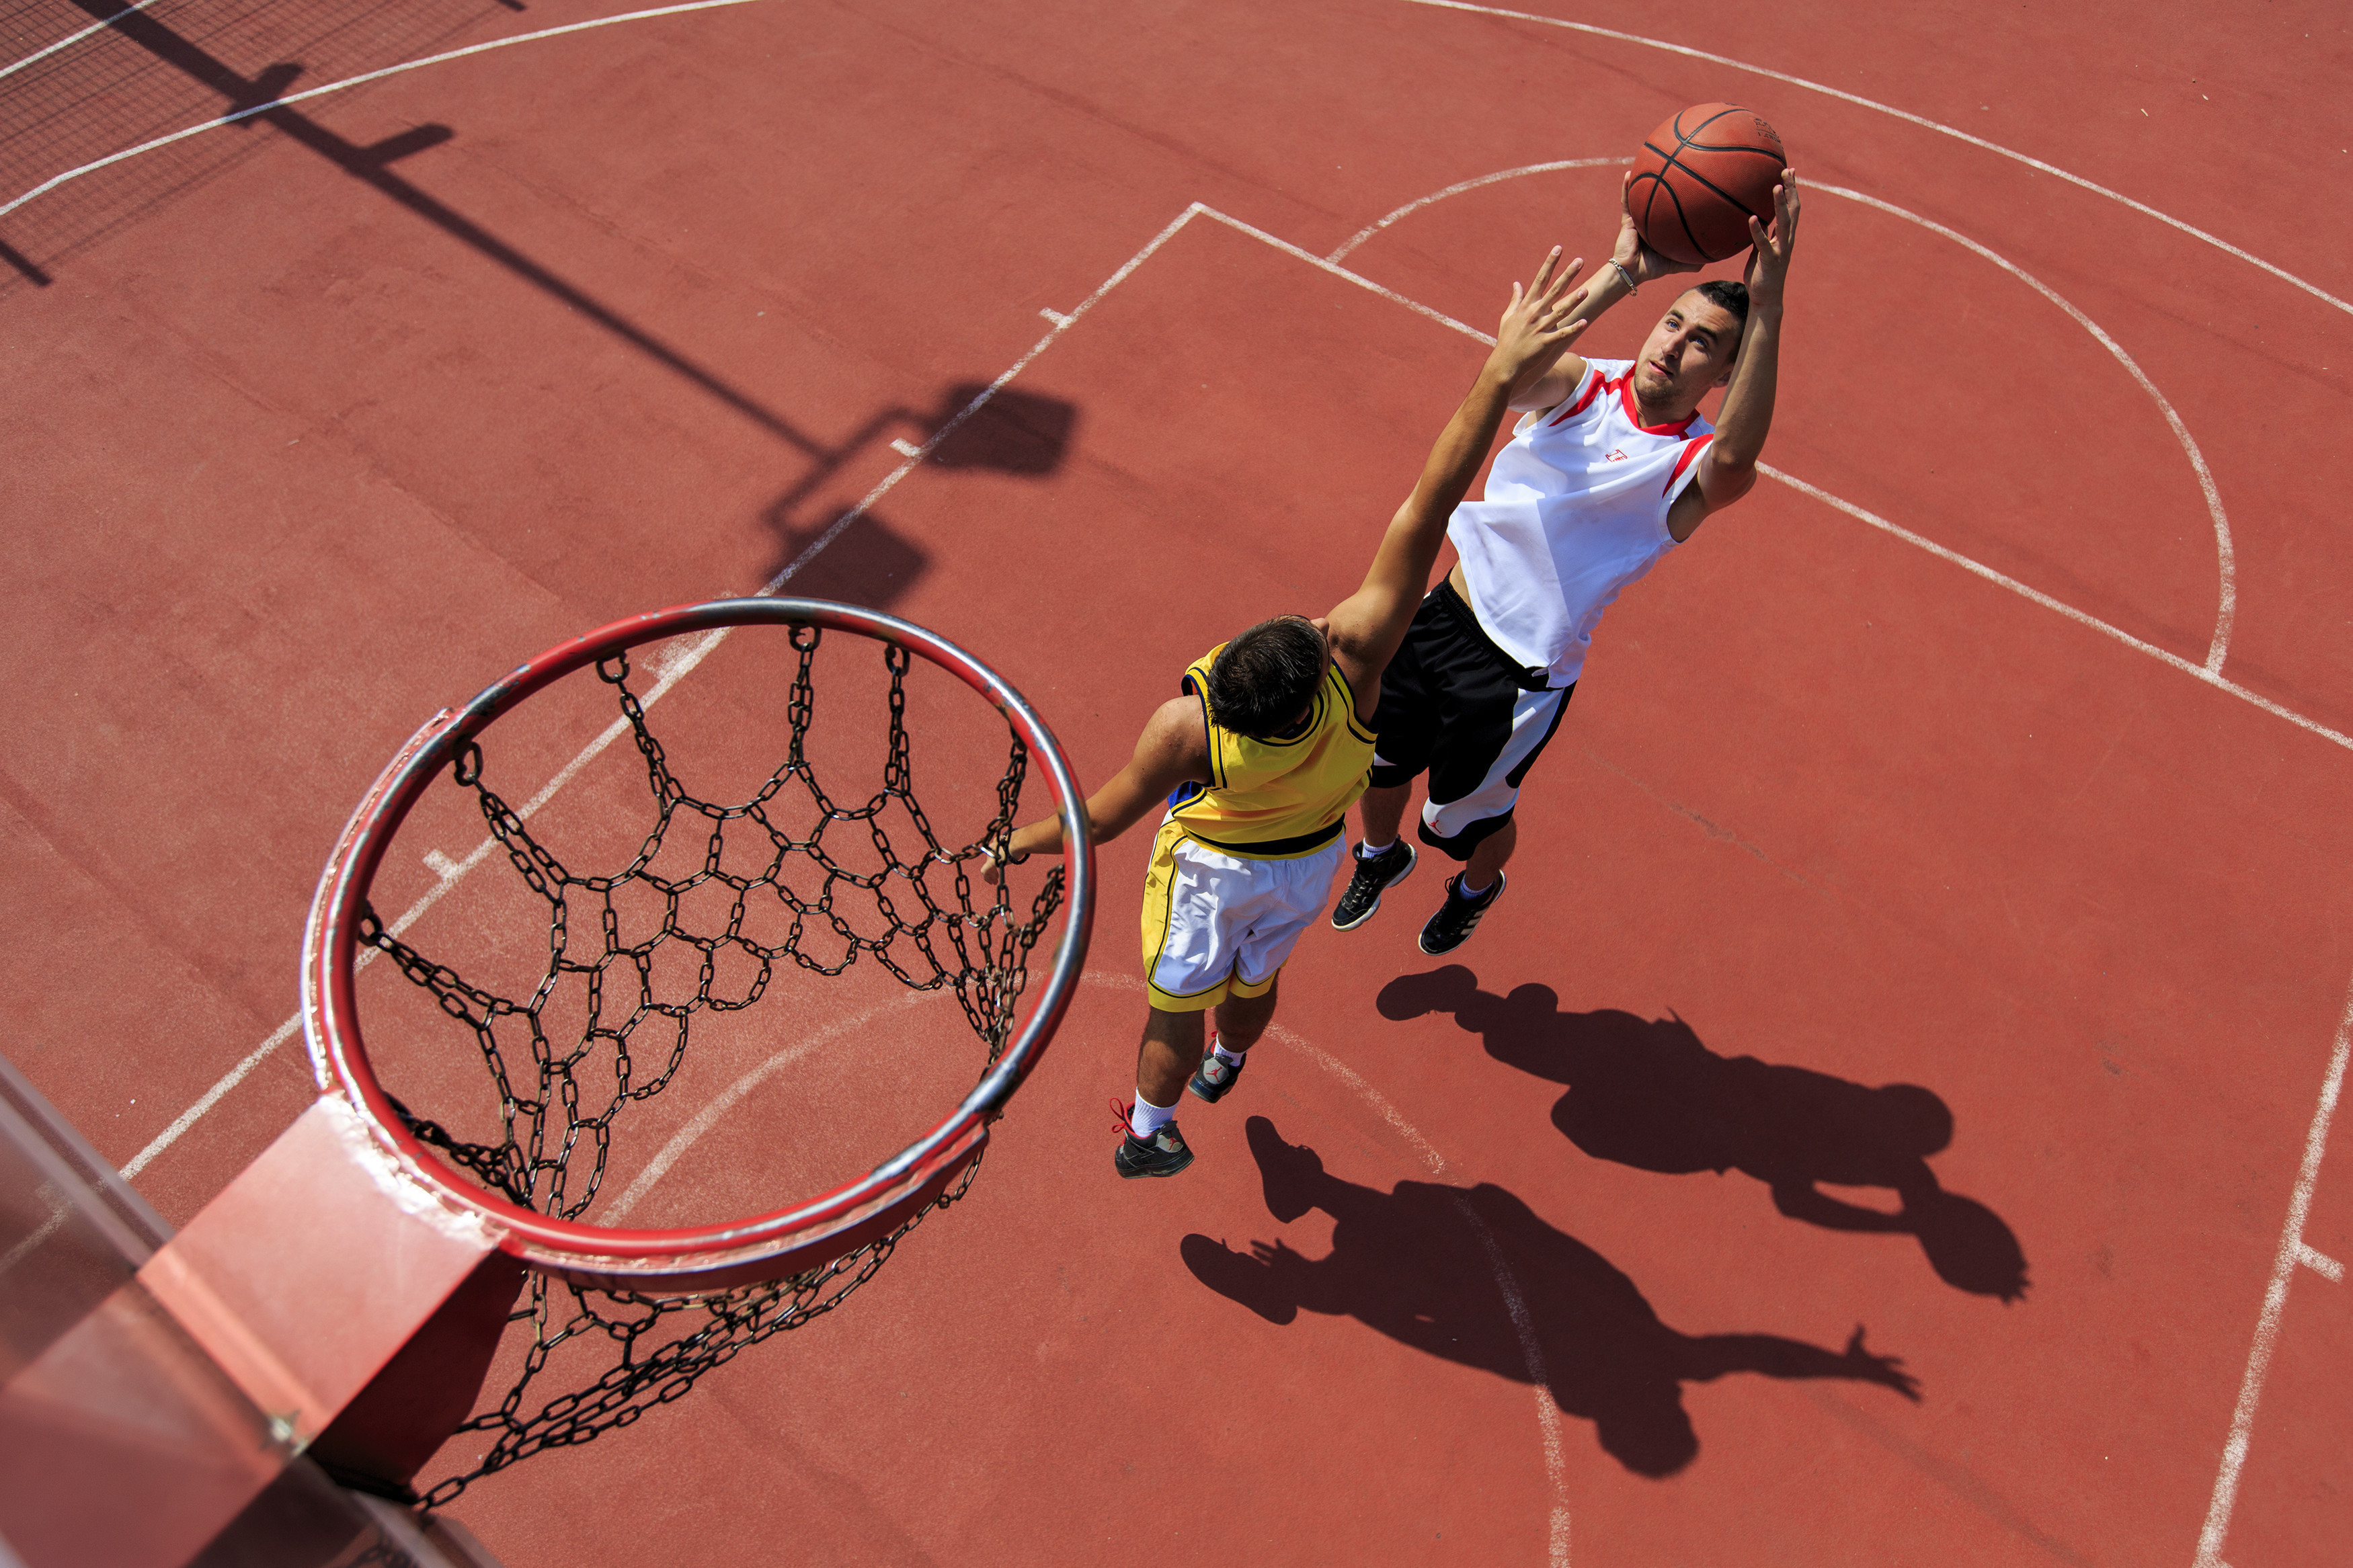 Basketball Courts Near River Ranch, FL |  Westgate River Ranch Resort & Rodeo | Westgate Resorts